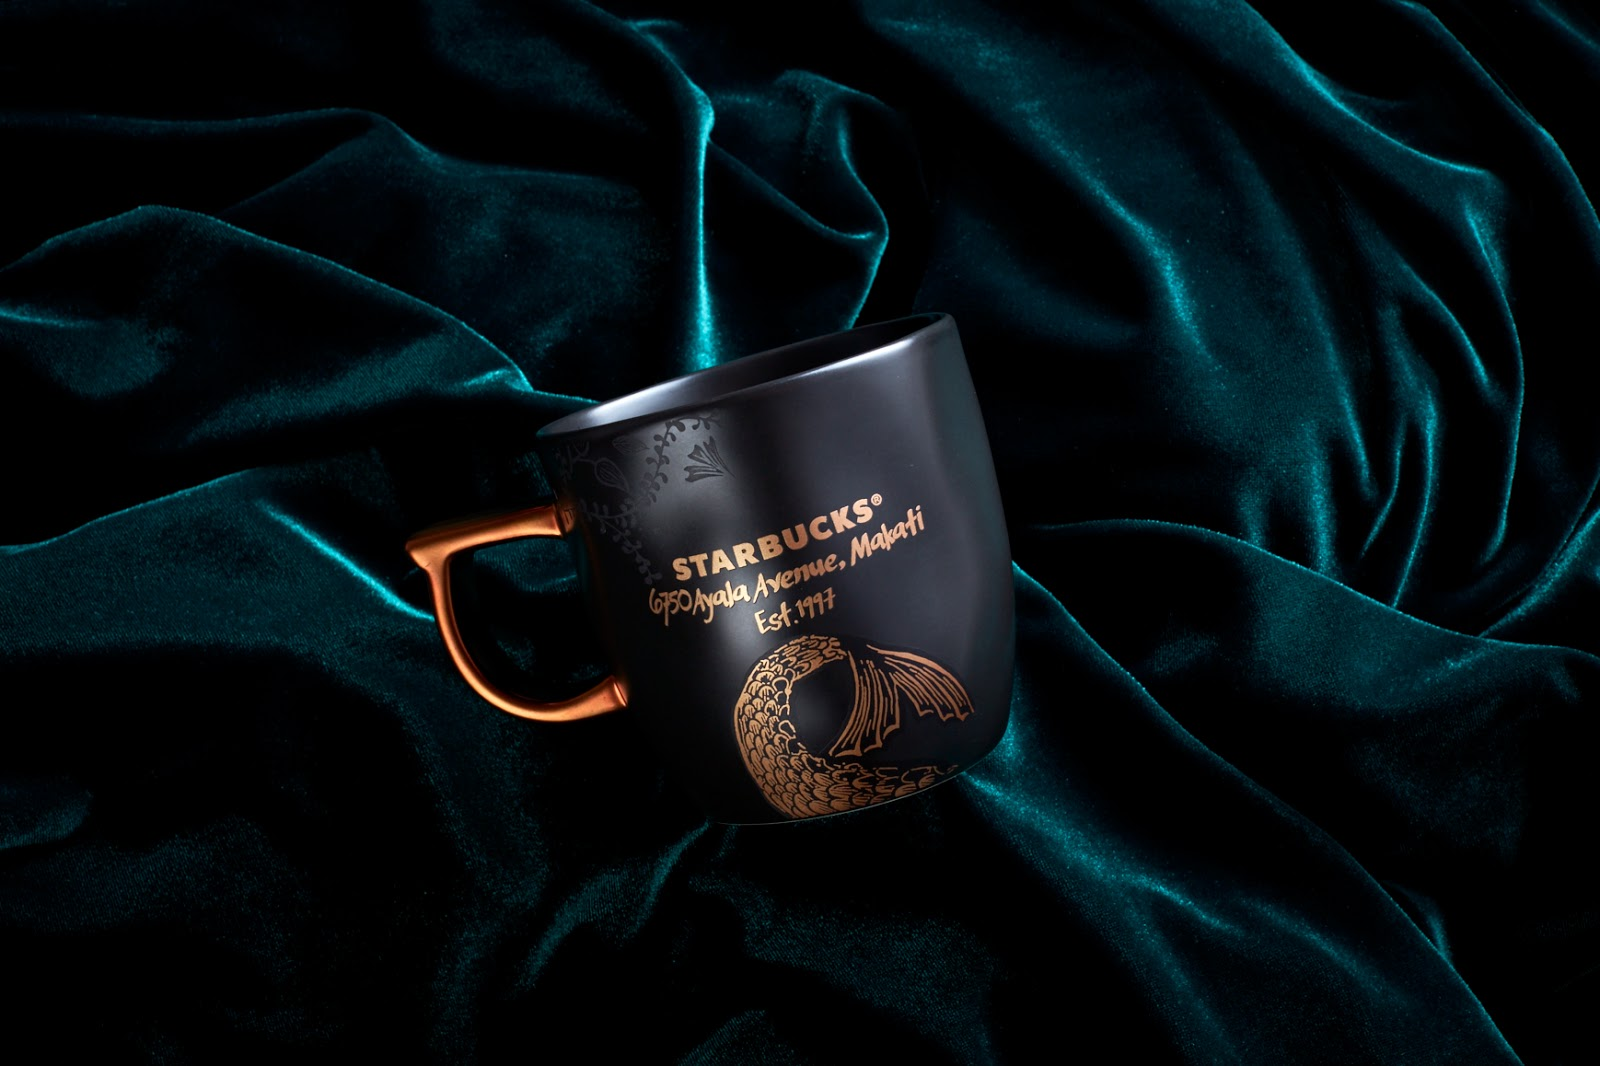 1f5868ae9046 The most precious item for release is the 20th Anniversary mug in full  white gold. Starbucks created this rare premium item as a nod to Philippine  heritage.